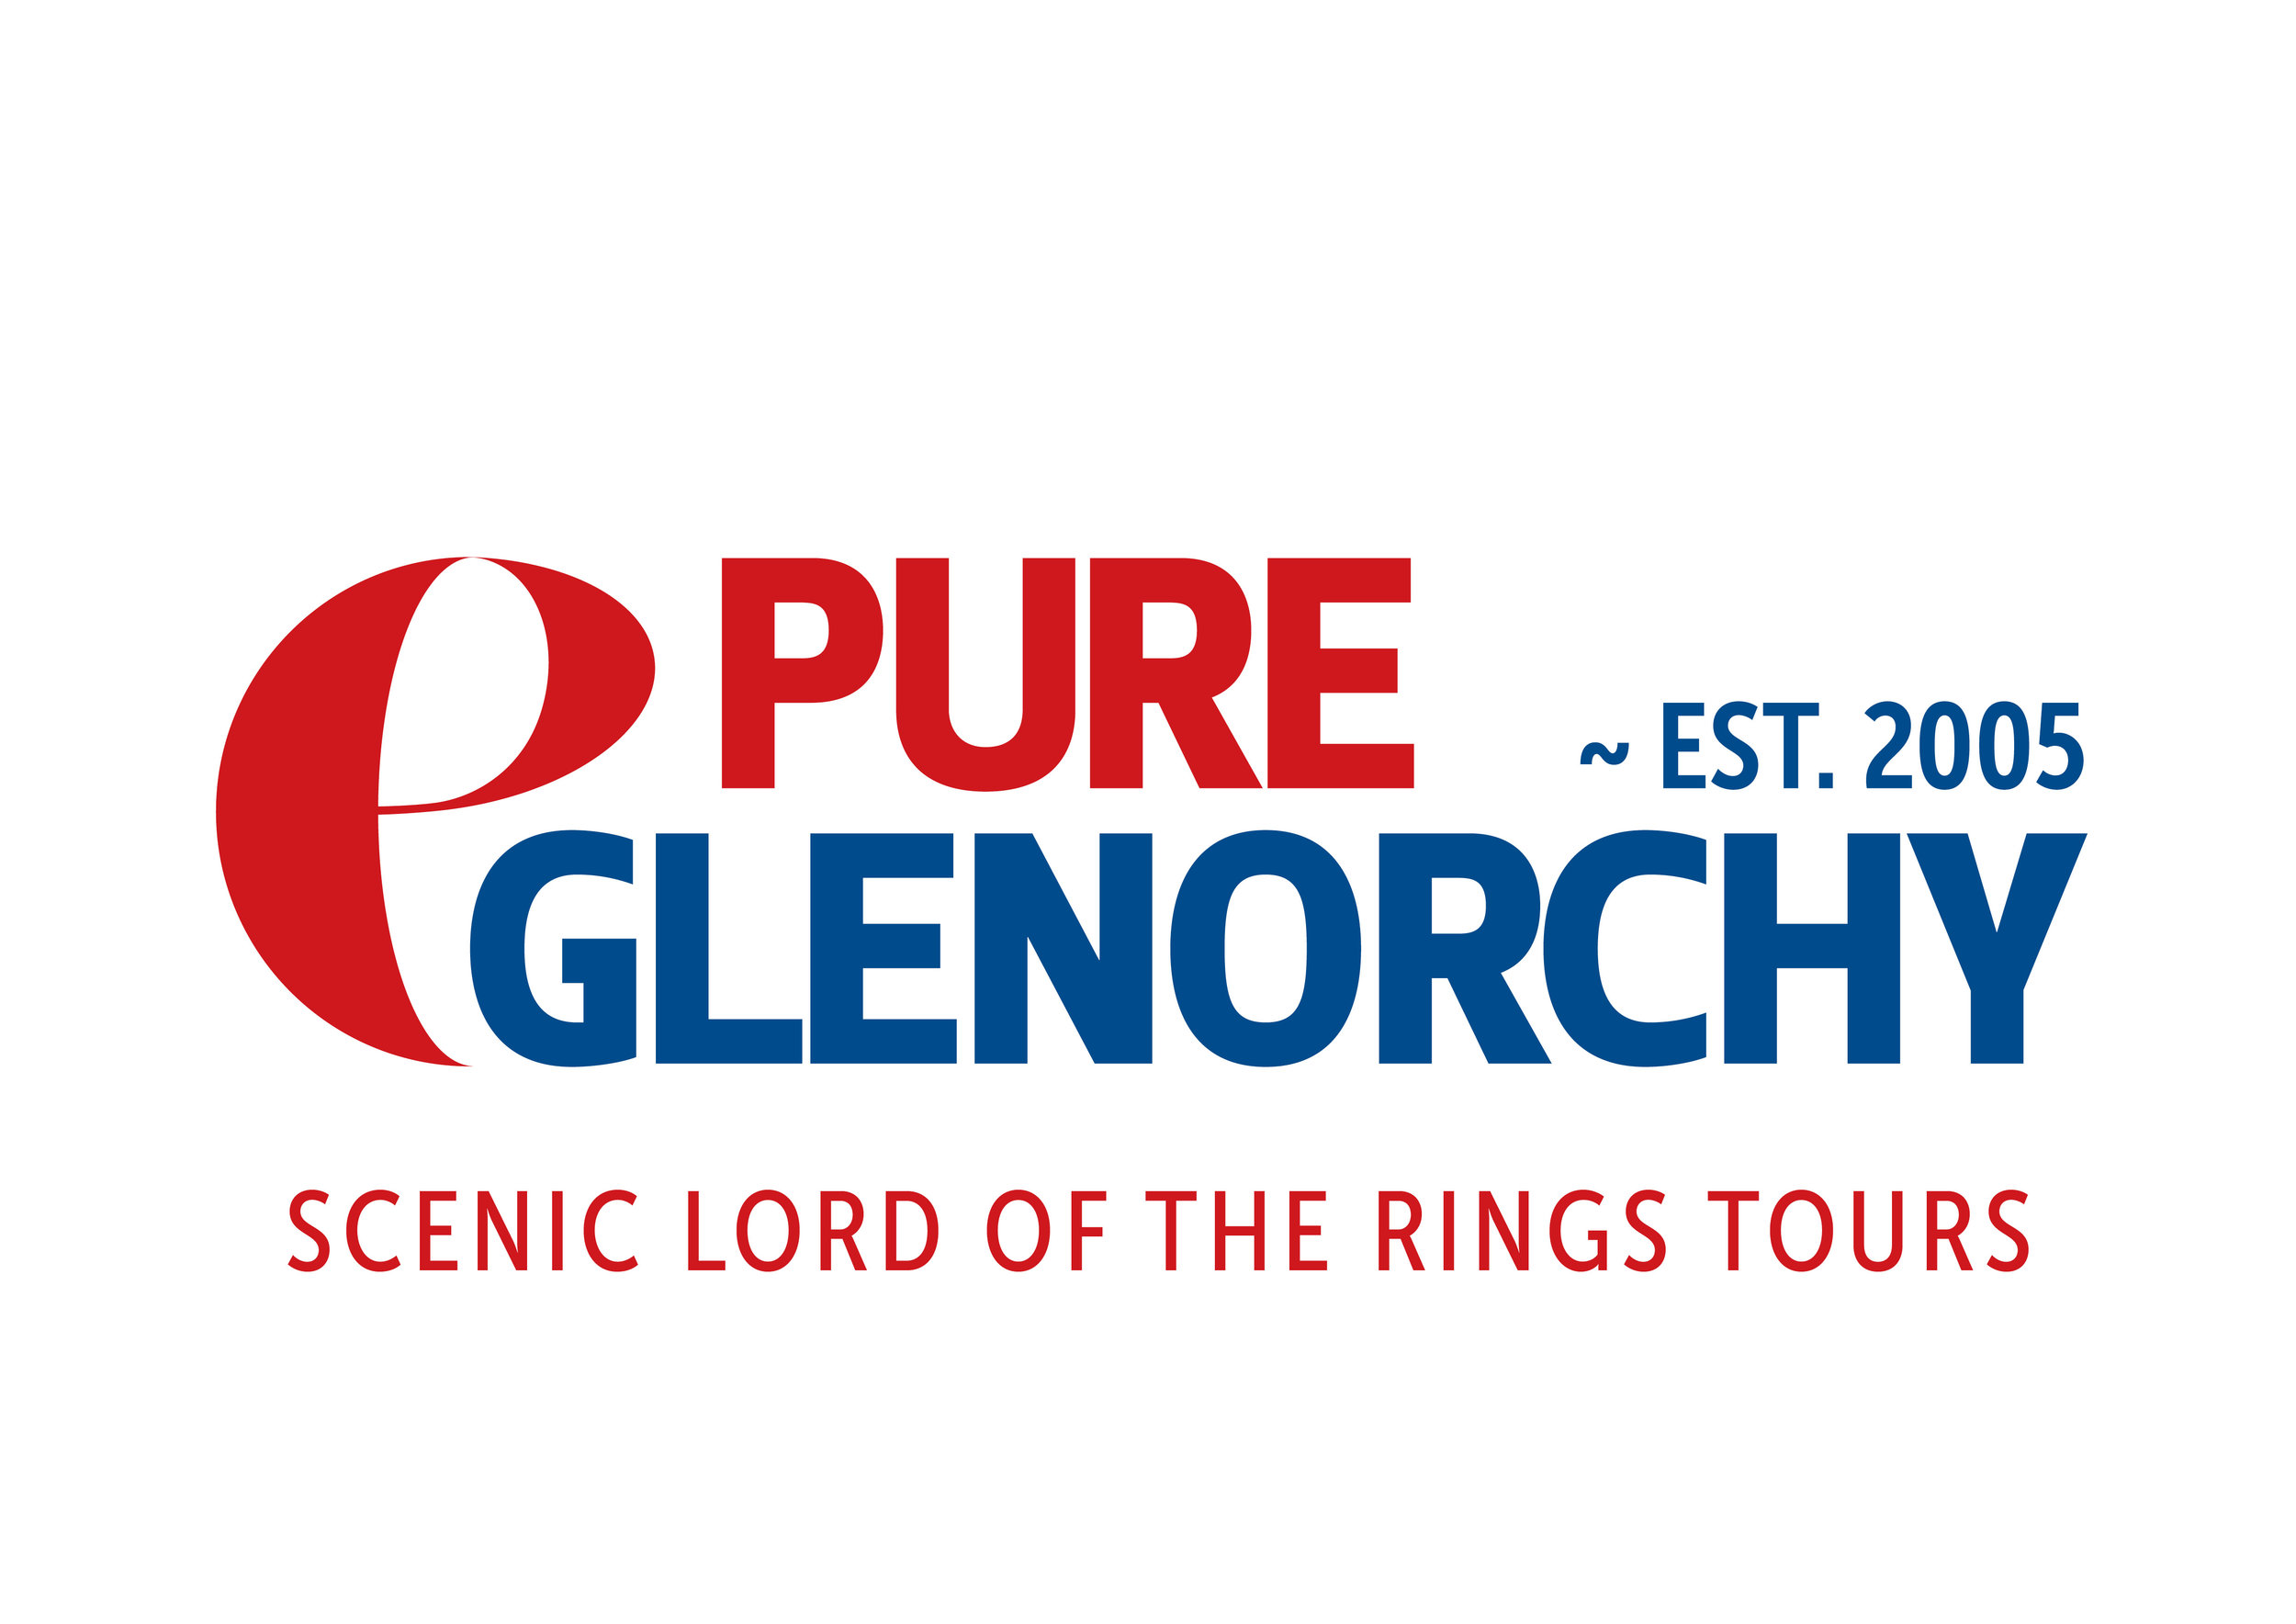 We are a family team that is passionate about Lord of the Rings and Glenorchy! Our guides and ourselves have a genuine love of the area and the Lord of the Rings and look forward to giving you an unforgettable experience.Operating since 2005, taking pride in delivering a great tour every time.Locally owned and operated family business since 2005.Friendly local guides with a vast knowledge and passion for the area.Pure Glenorchy guests travel in comfortable 4WD vehicles with all seats forward facing.We enjoy sharing stories and showing film locations of Lord of the Rings and the recently released Hobbit trilogy.We are proud of our 100% safety record and stringent safety procedures are observed at all times.Pure Glenorchy is recognised as one of NZ's leading tourism businesses by being licensed to carry the Qualmark New Zealand tourism official mark of quality. -